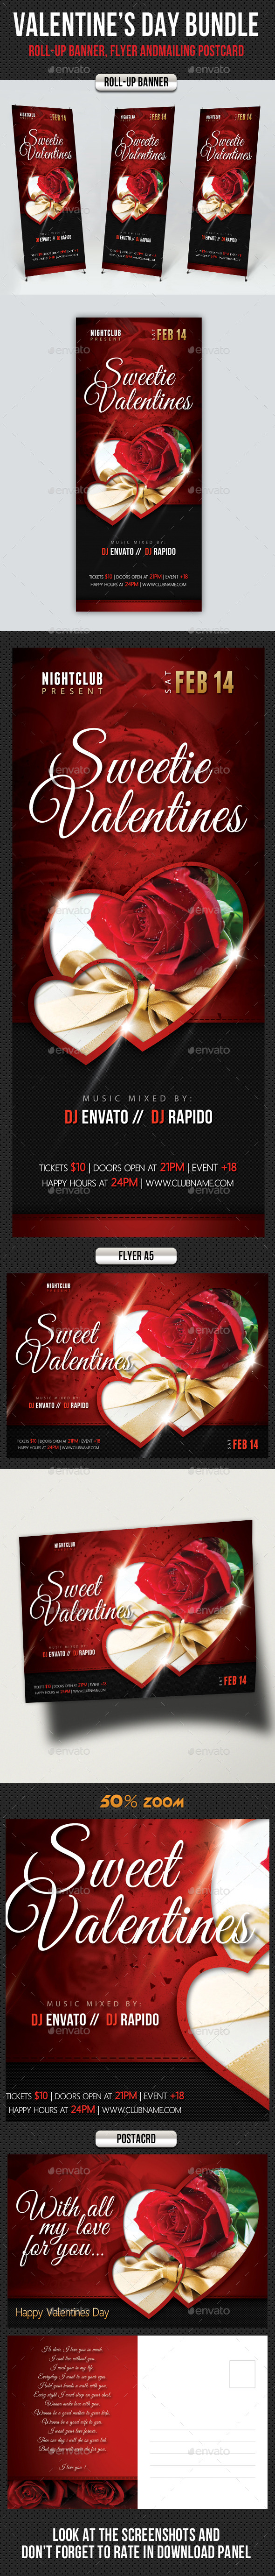 GraphicRiver 3 in 1 Valentines Day Banner Flyer Postcard Bundle 10056158